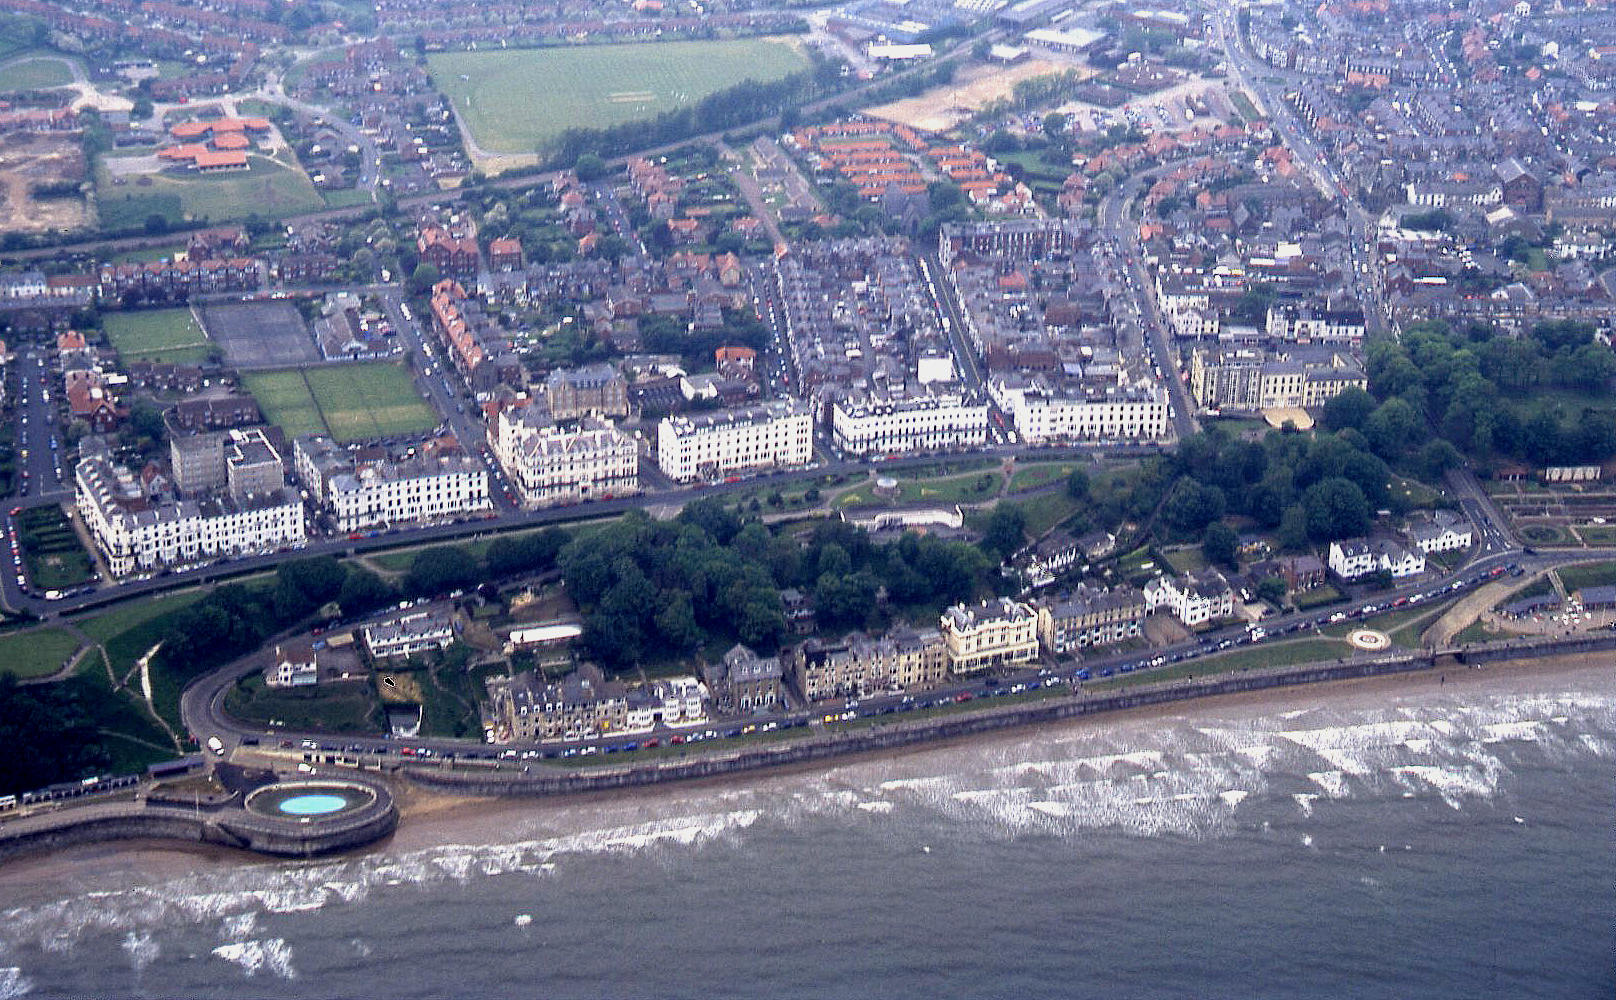 Scarborough, Yorkshire in 2004